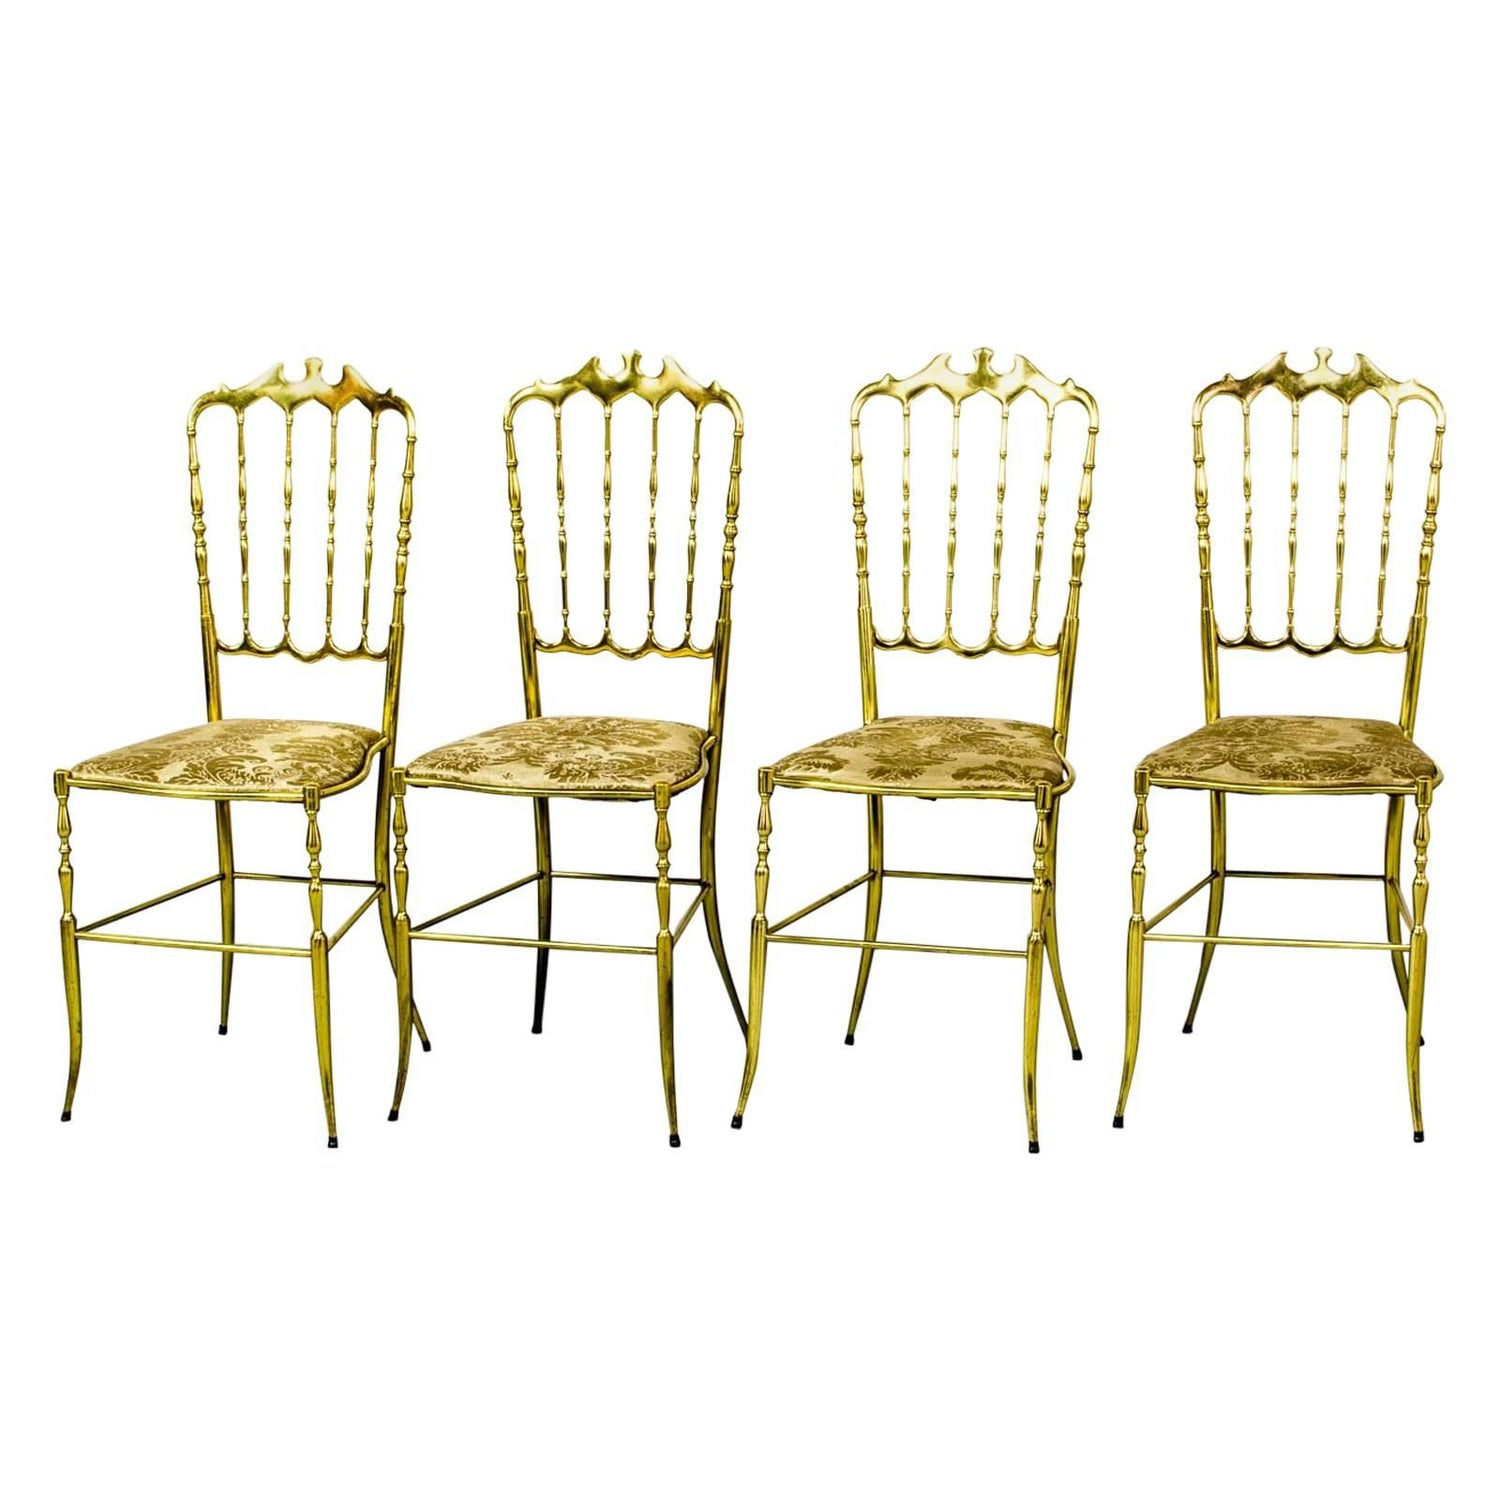 Chiavari Furniture Chairs Sofas Tables & More 56 For Sale at